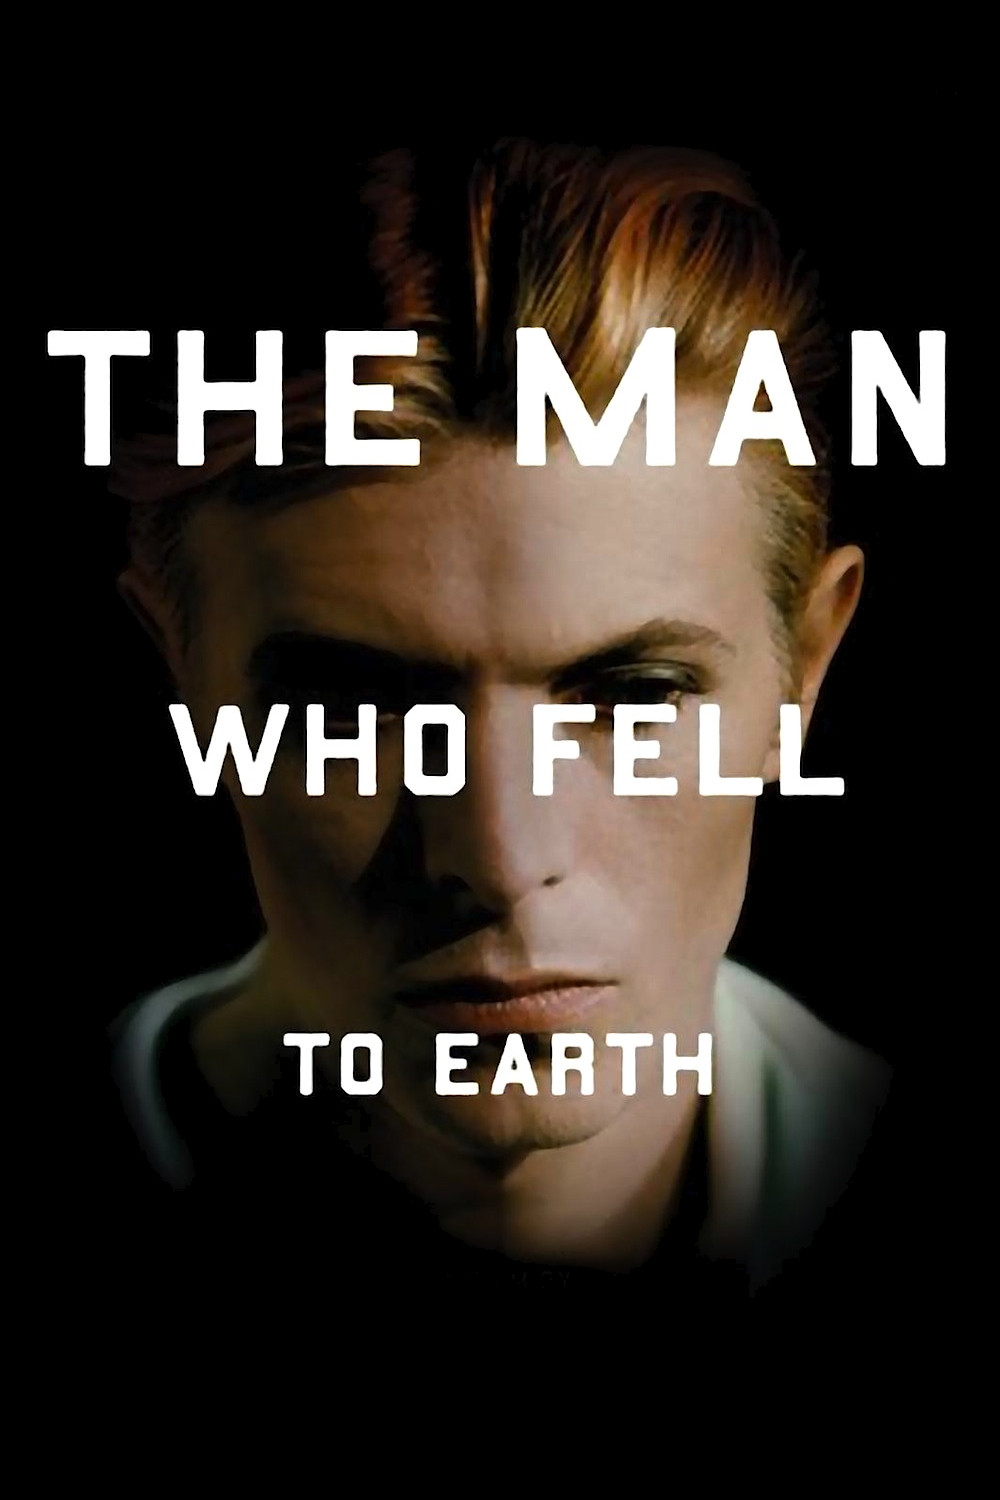 the_man_who_fell_to_earth_original